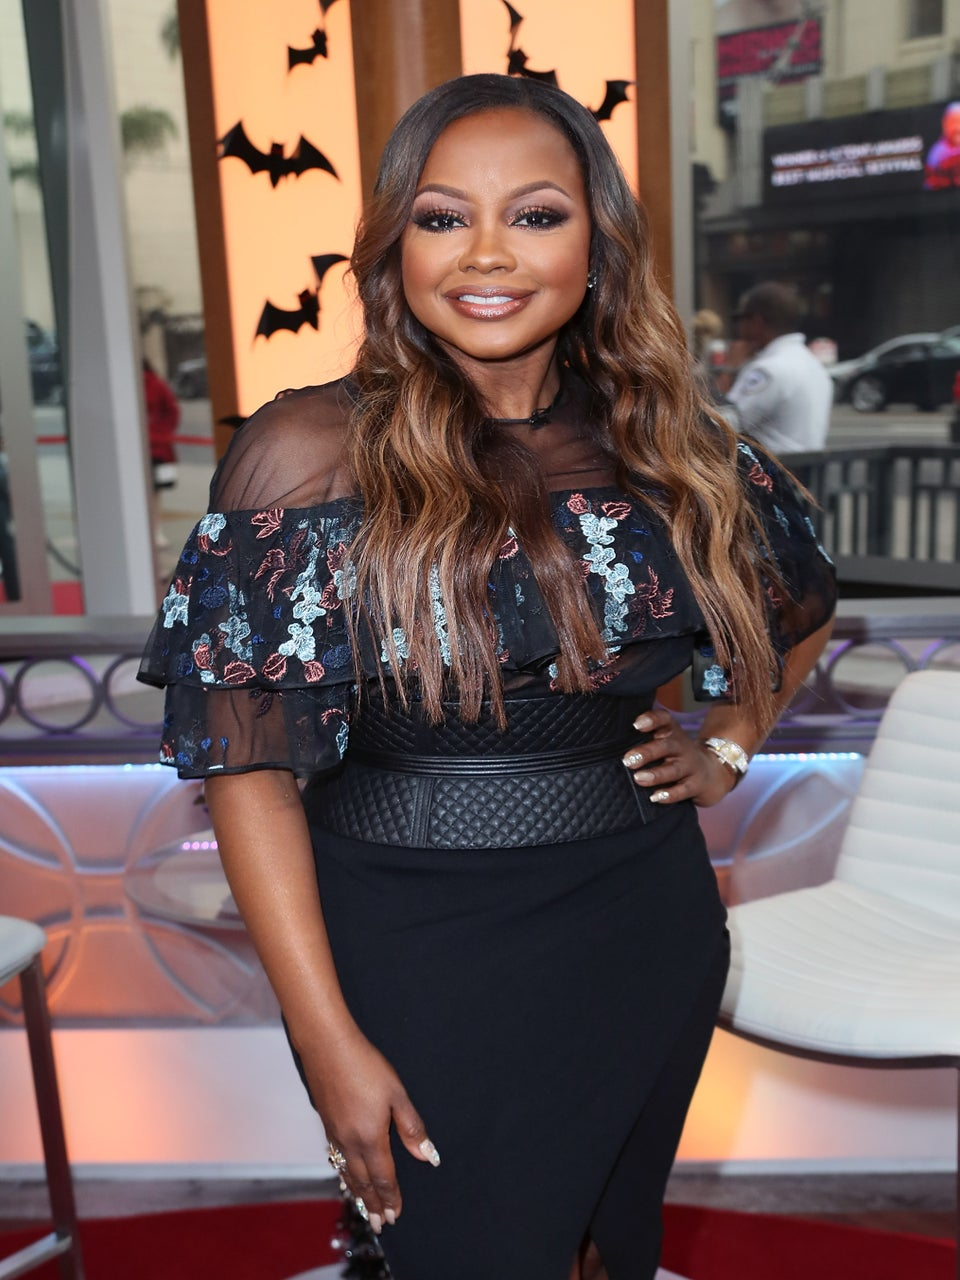 Phaedra Parks Says She And Her Children Are Receiving Daily Threats